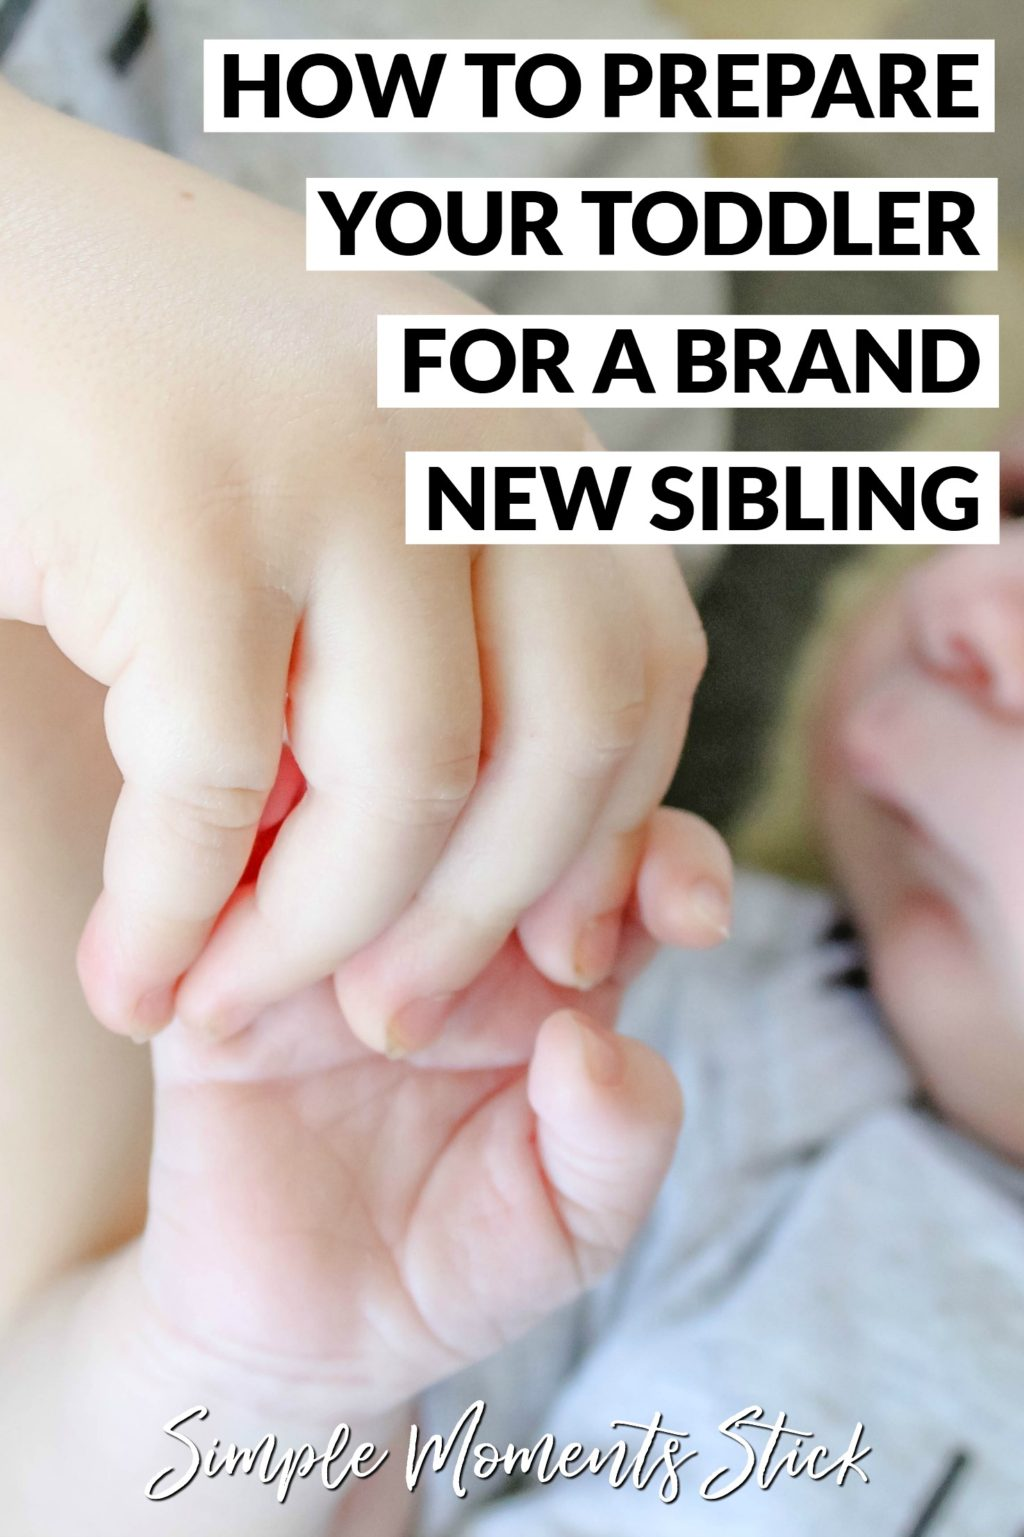 How to prepare your toddler for a sibling